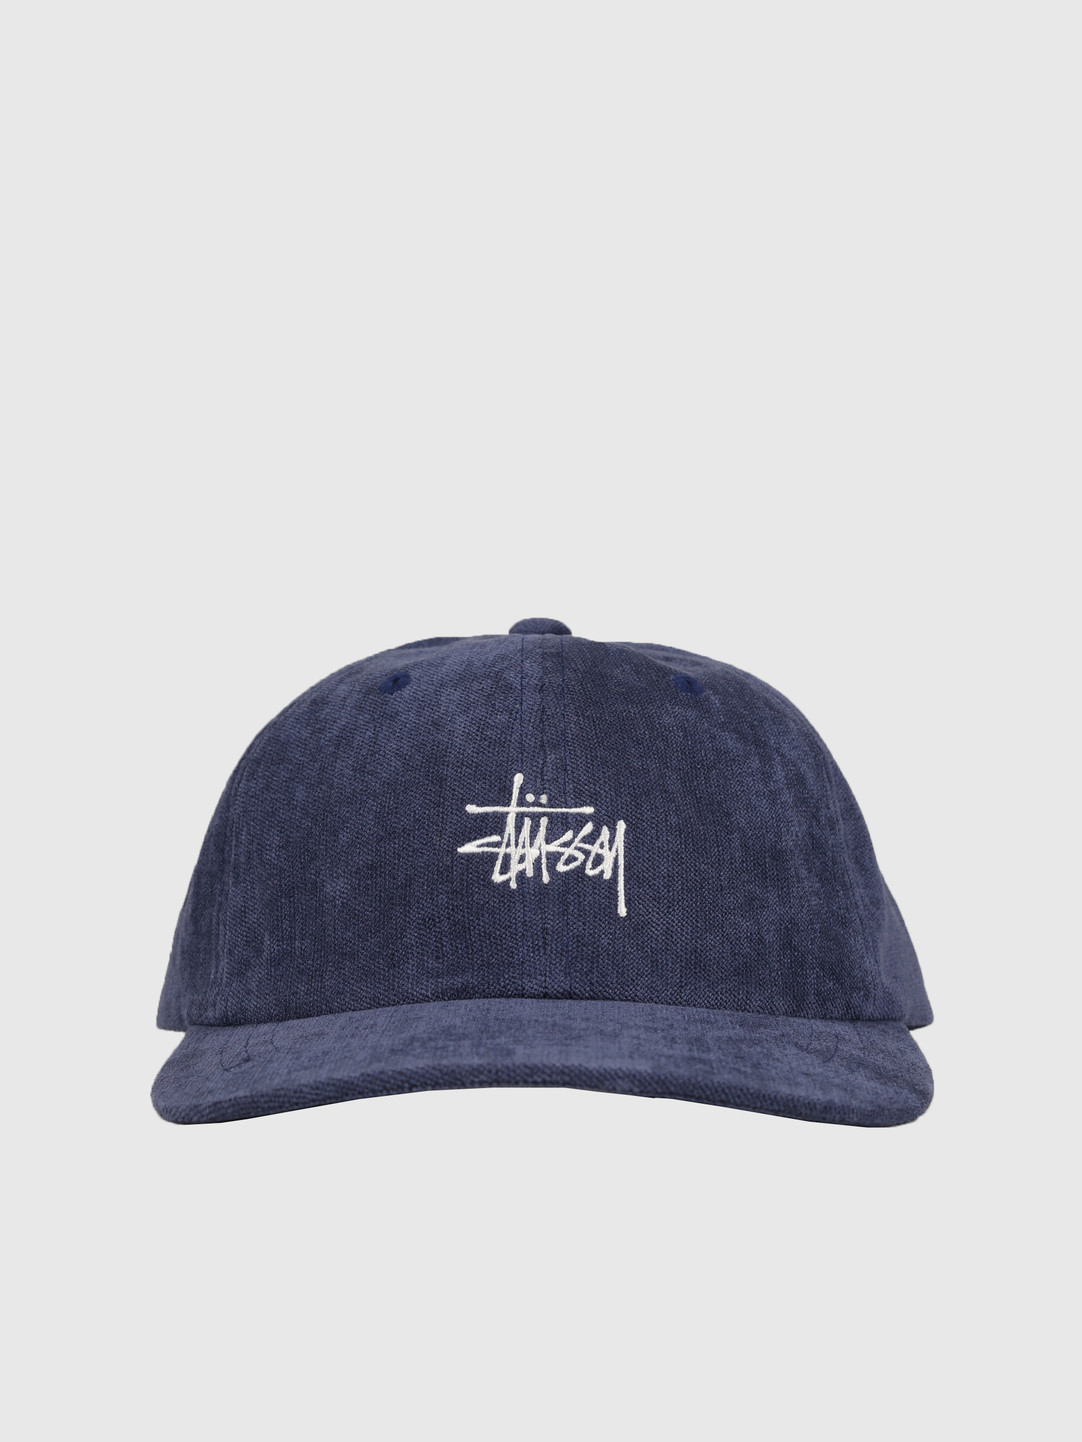 Stussy Stussy No Wale Cord Low Pro Cap Navy 0806